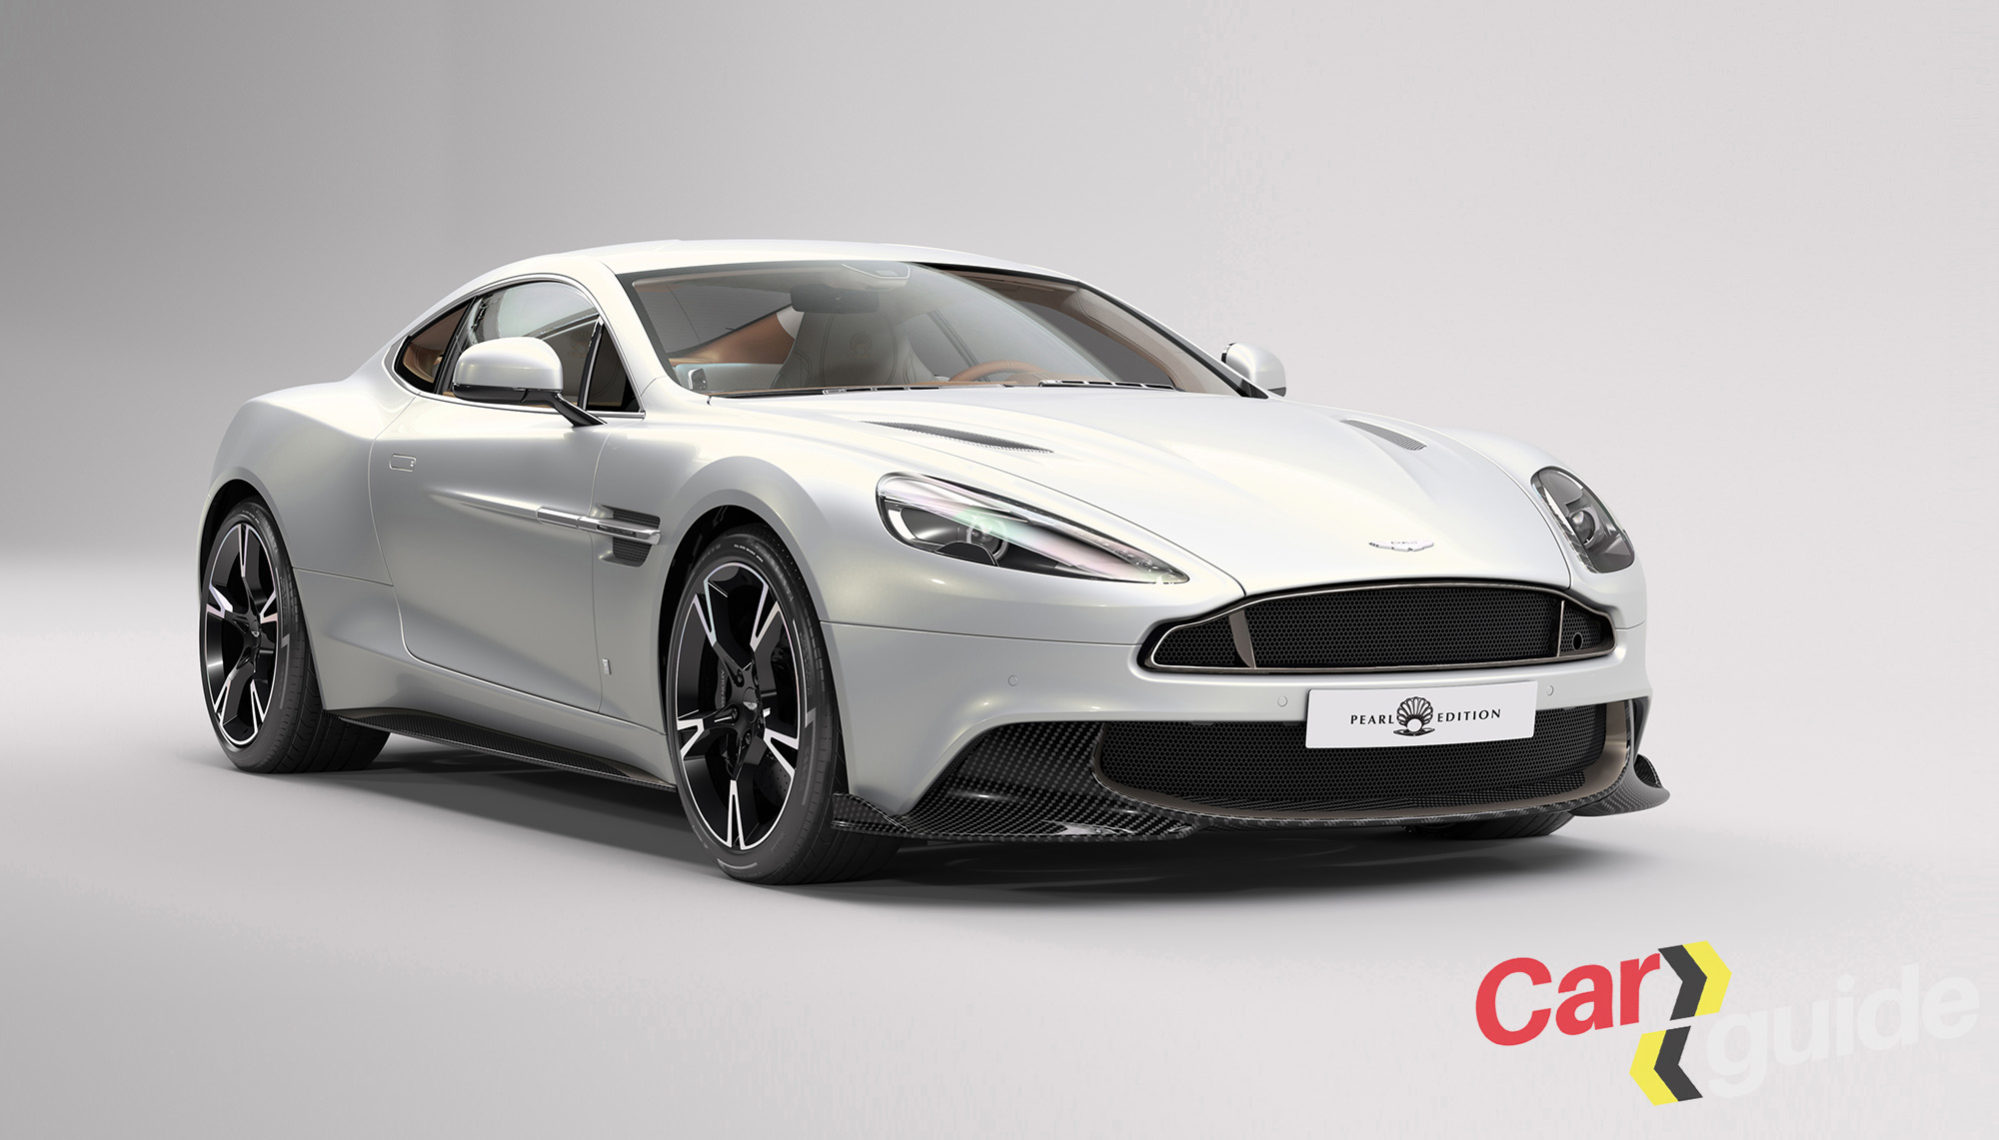 Aston Martin announces Vanquish S Pearl edition for Middle East market